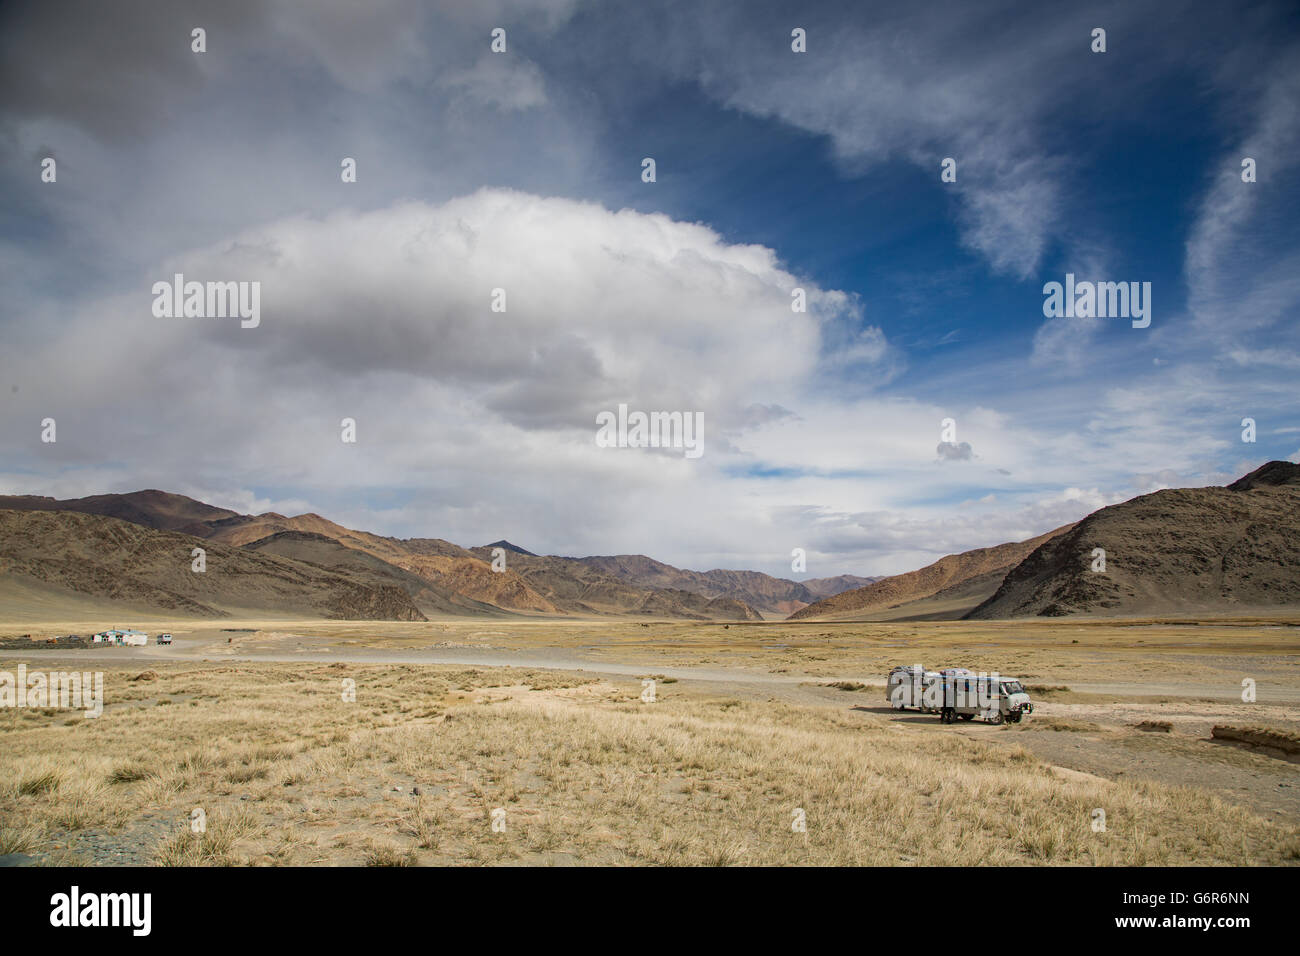 two cars on the side of a highway to west in the landscape of western Mongolia - Stock Image